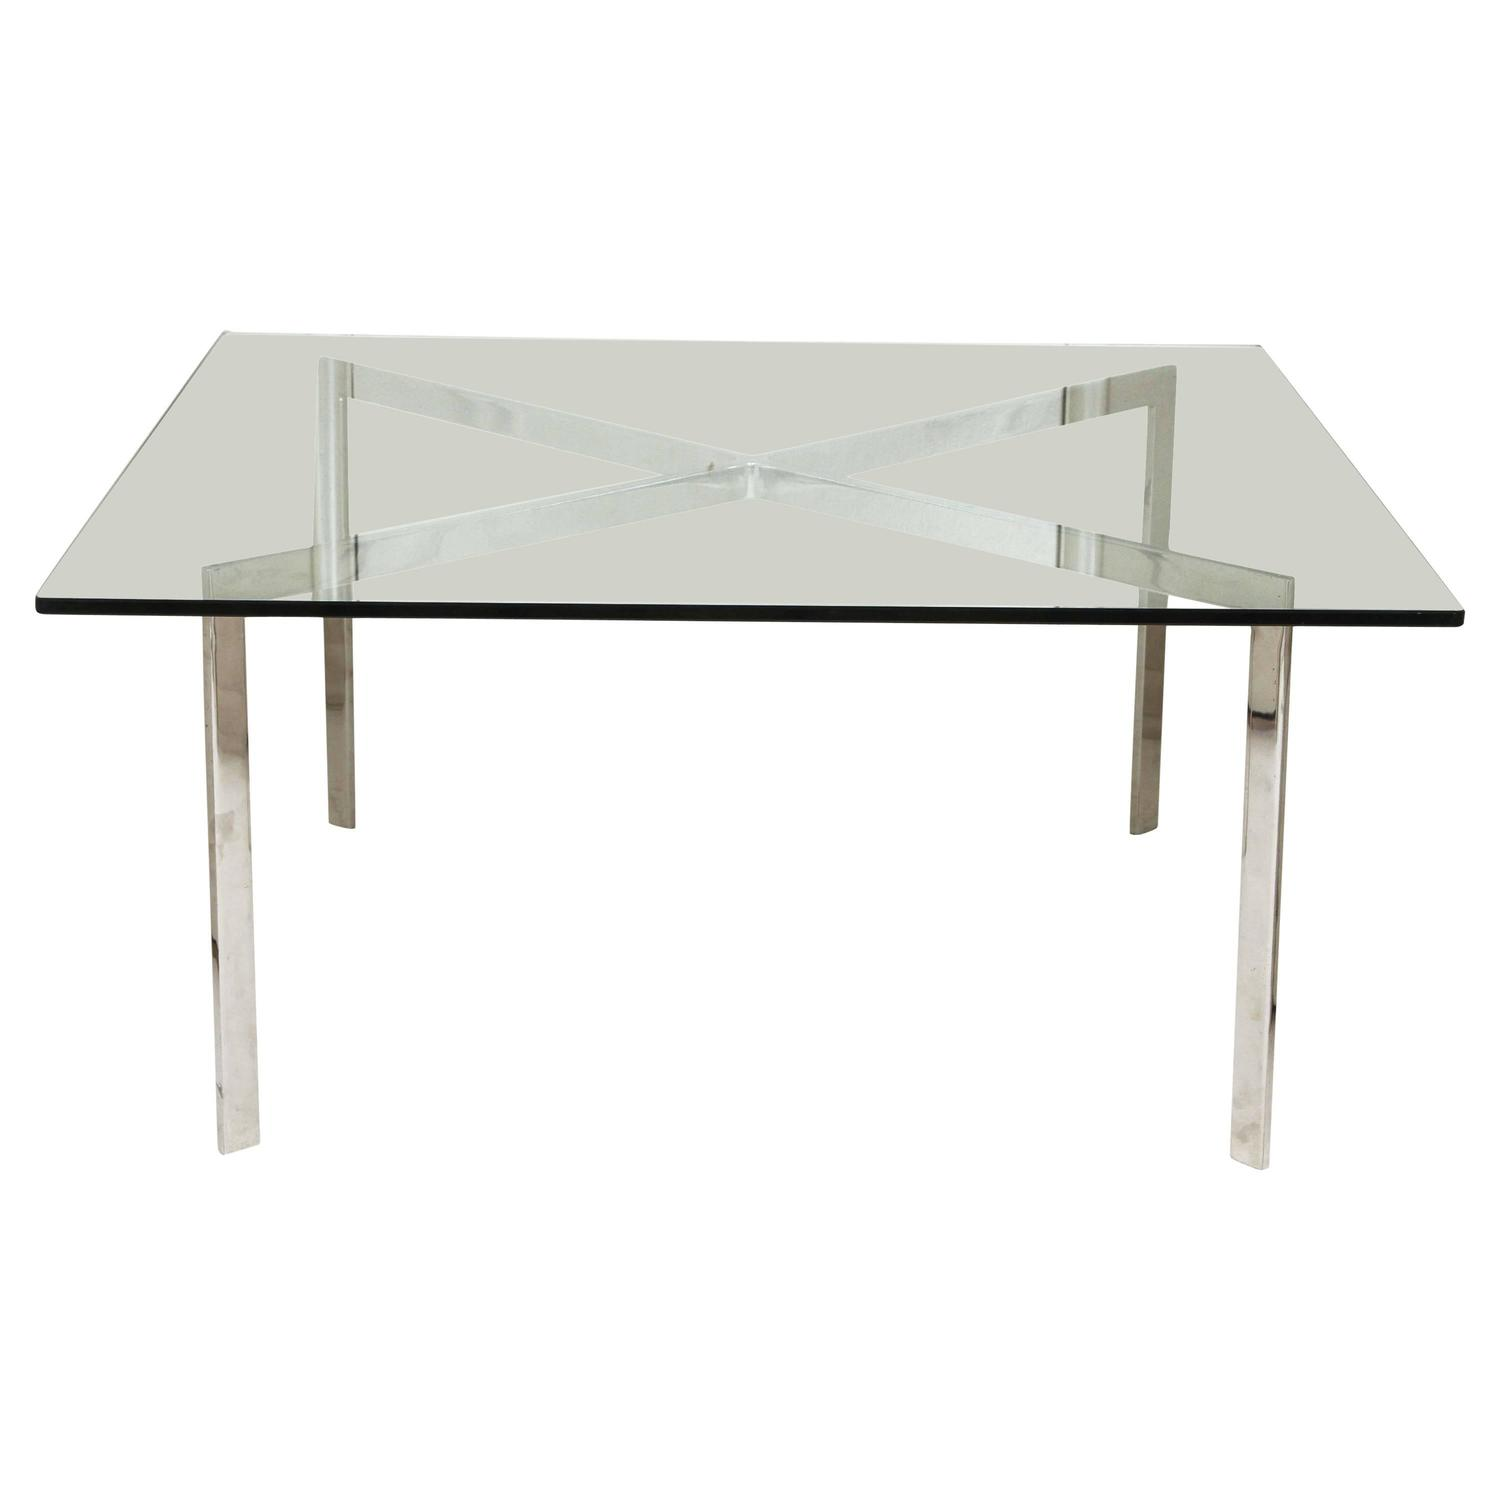 Knoll barcelona table i for sale at 1stdibs - Barcelona table knoll ...